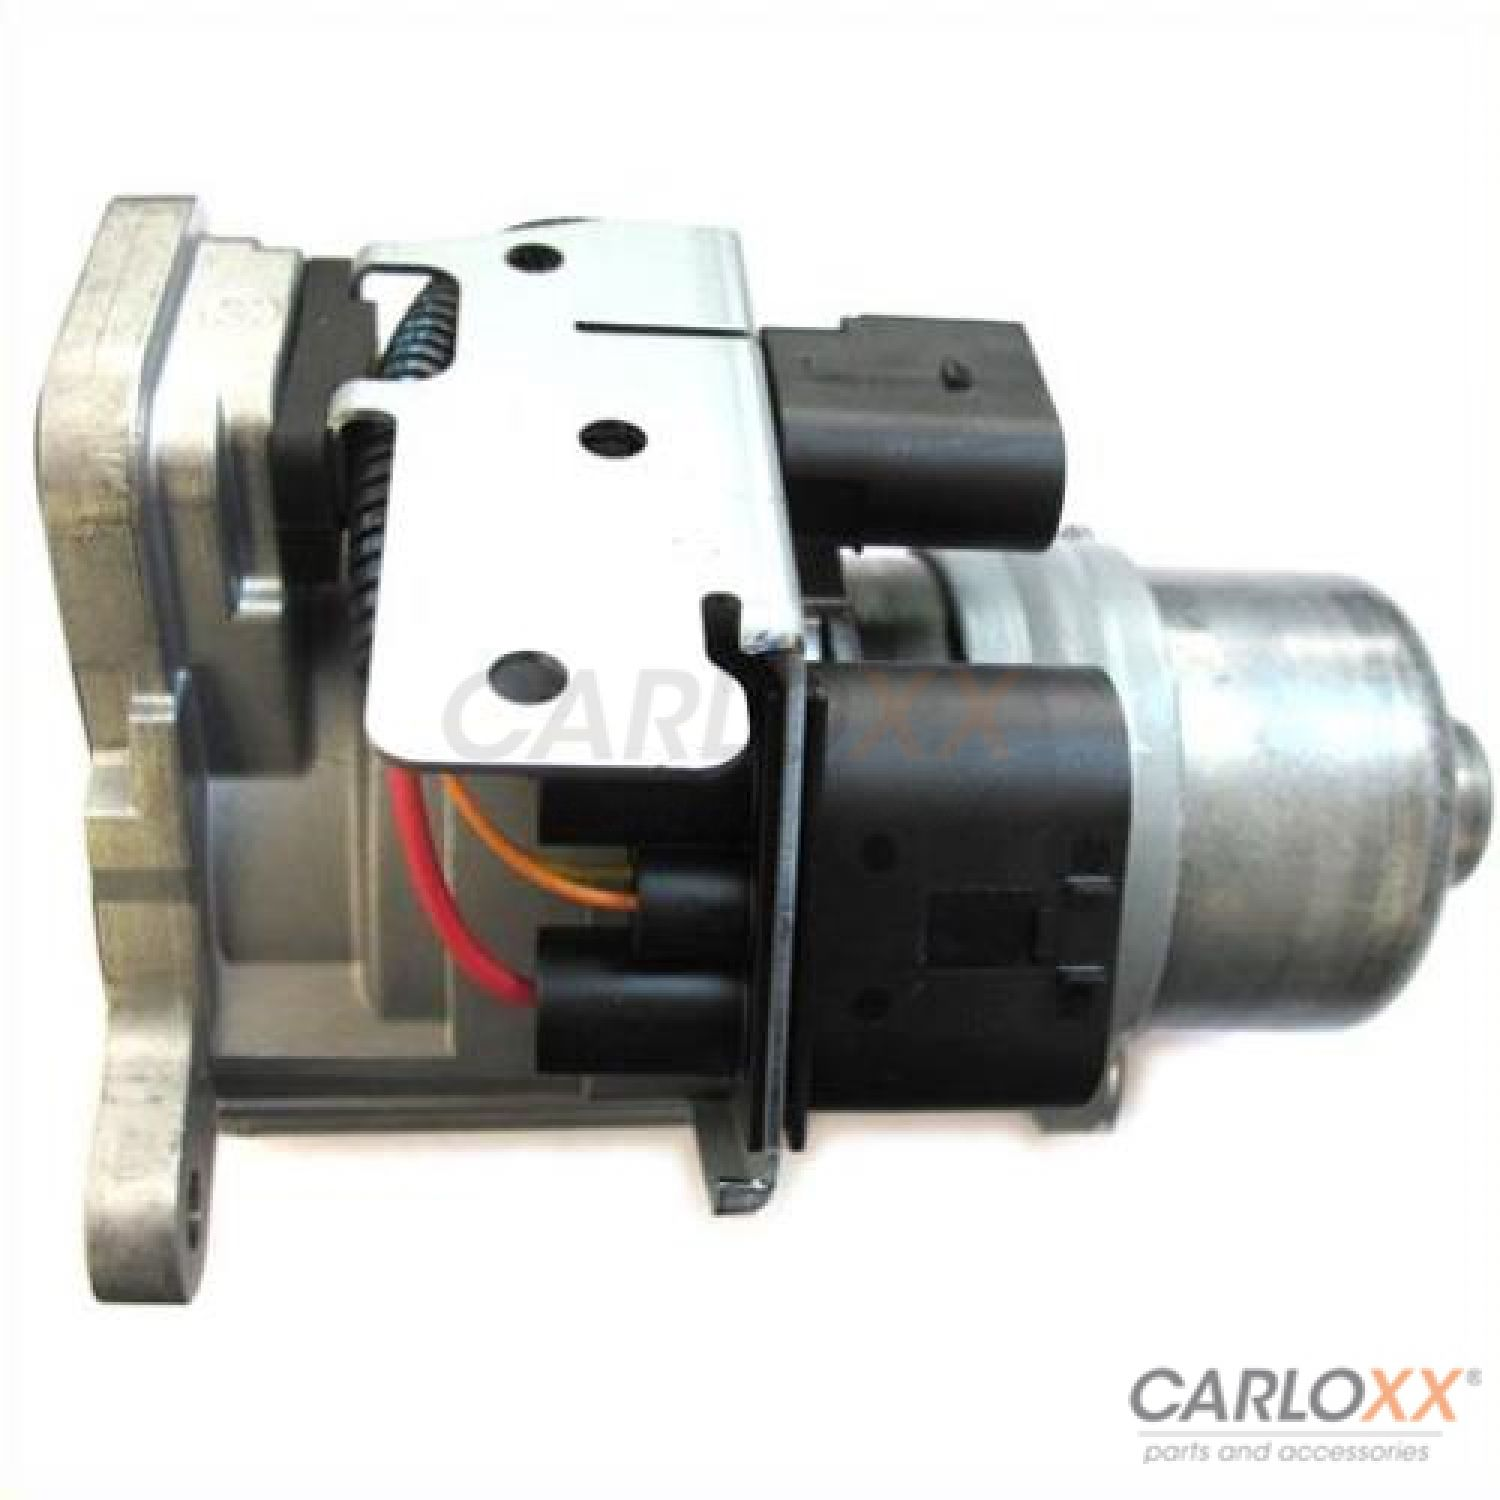 vw touareg porsche cayenne transmission servo motor transfer case 0ad341601 ebay. Black Bedroom Furniture Sets. Home Design Ideas